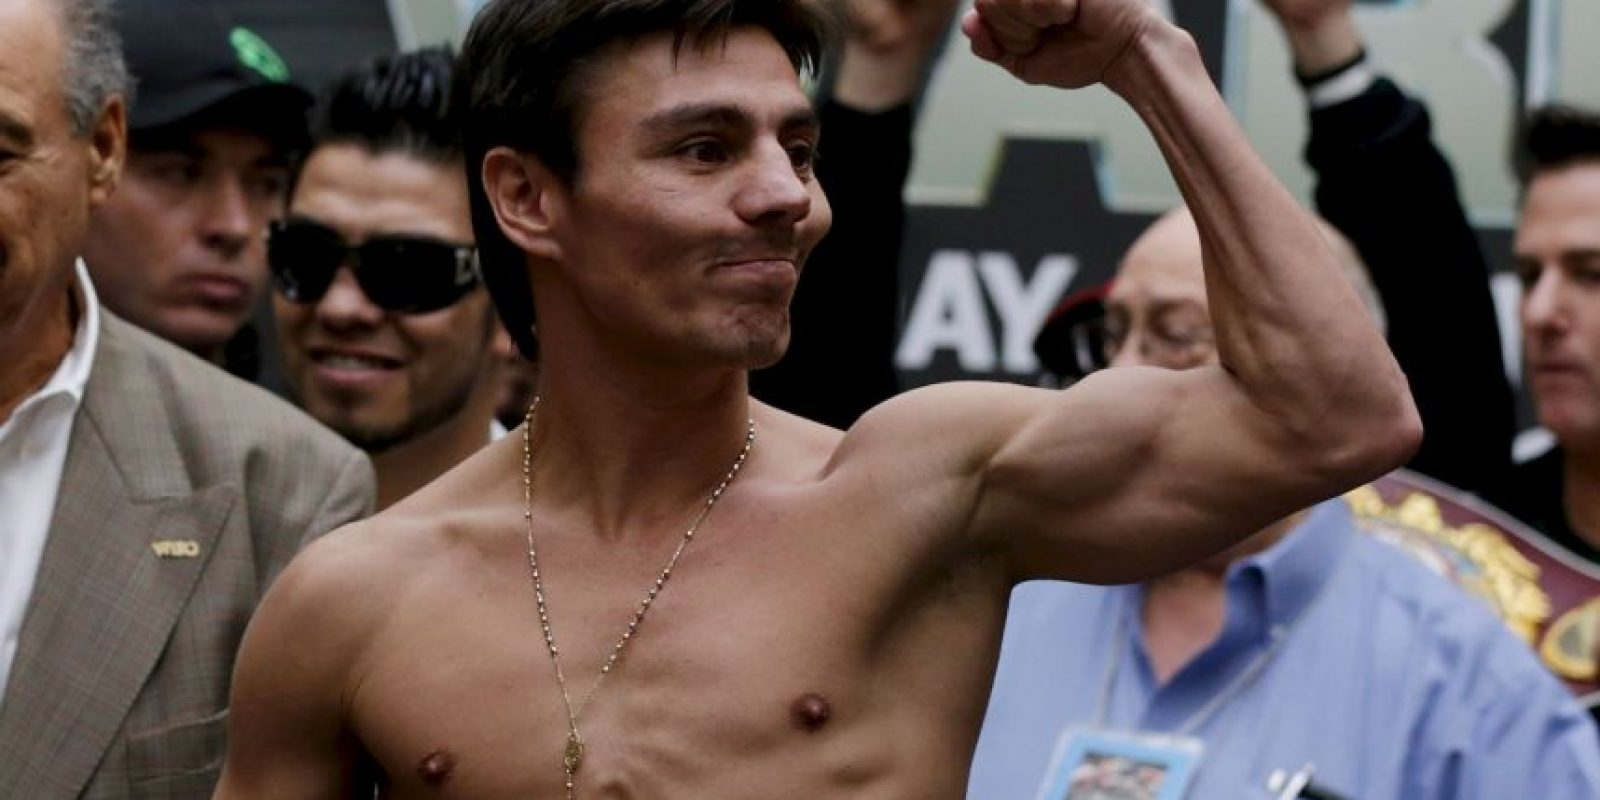 Jorge Arce (exboxeador mexicano) Foto: Getty Images